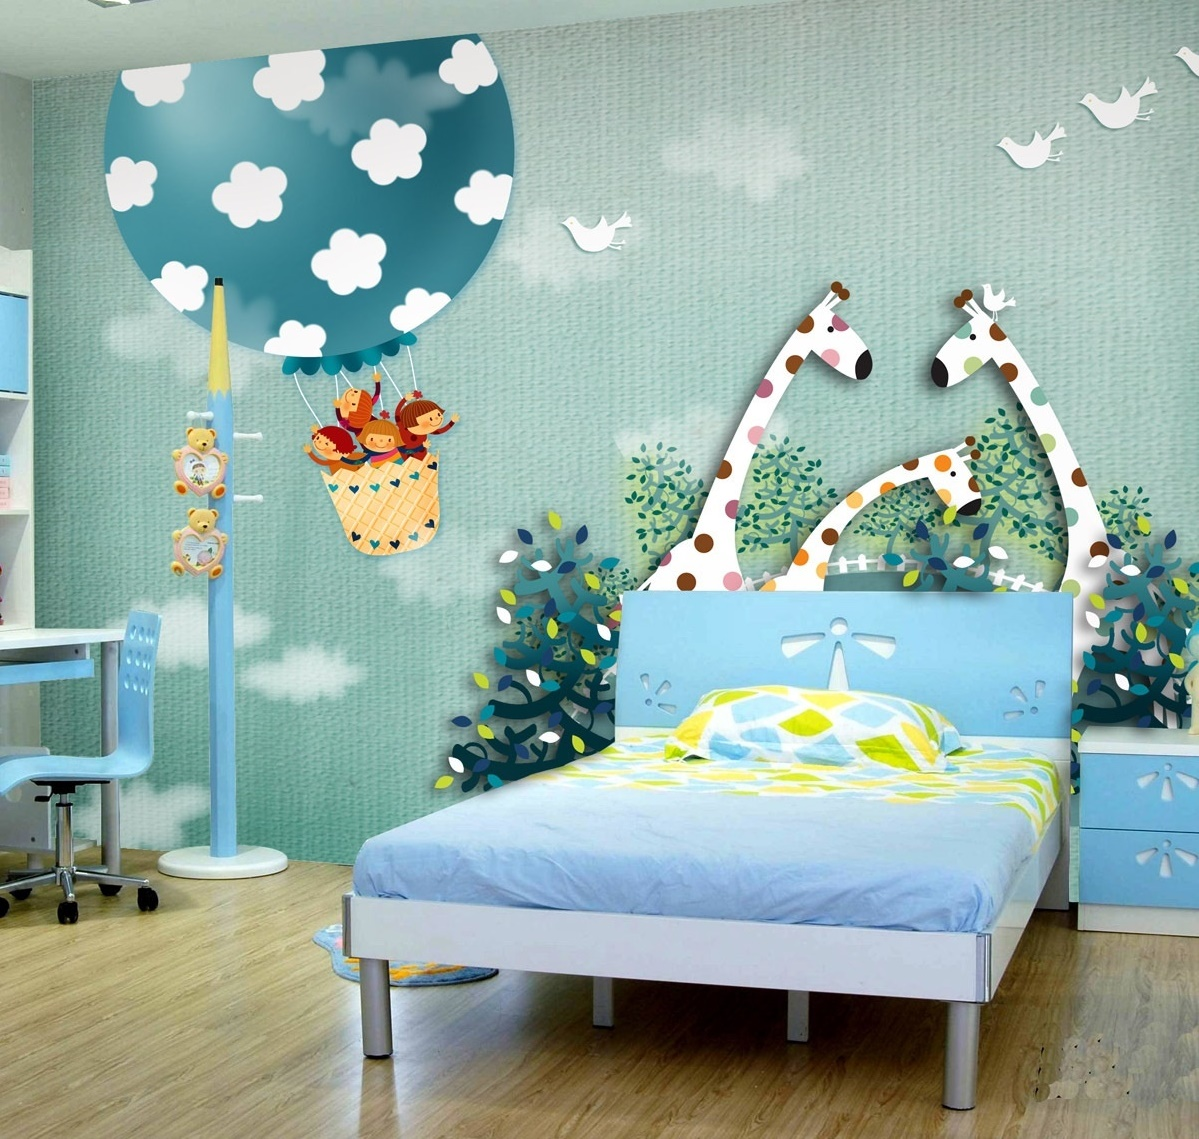 Adorable-Blue-Coral-Colored-Bedroom-which-Implemented-with-Star-Shaped-Pendant-Lamp-Cover-and-Blue-Bed-Sheet-of-Childs-Bed-Room